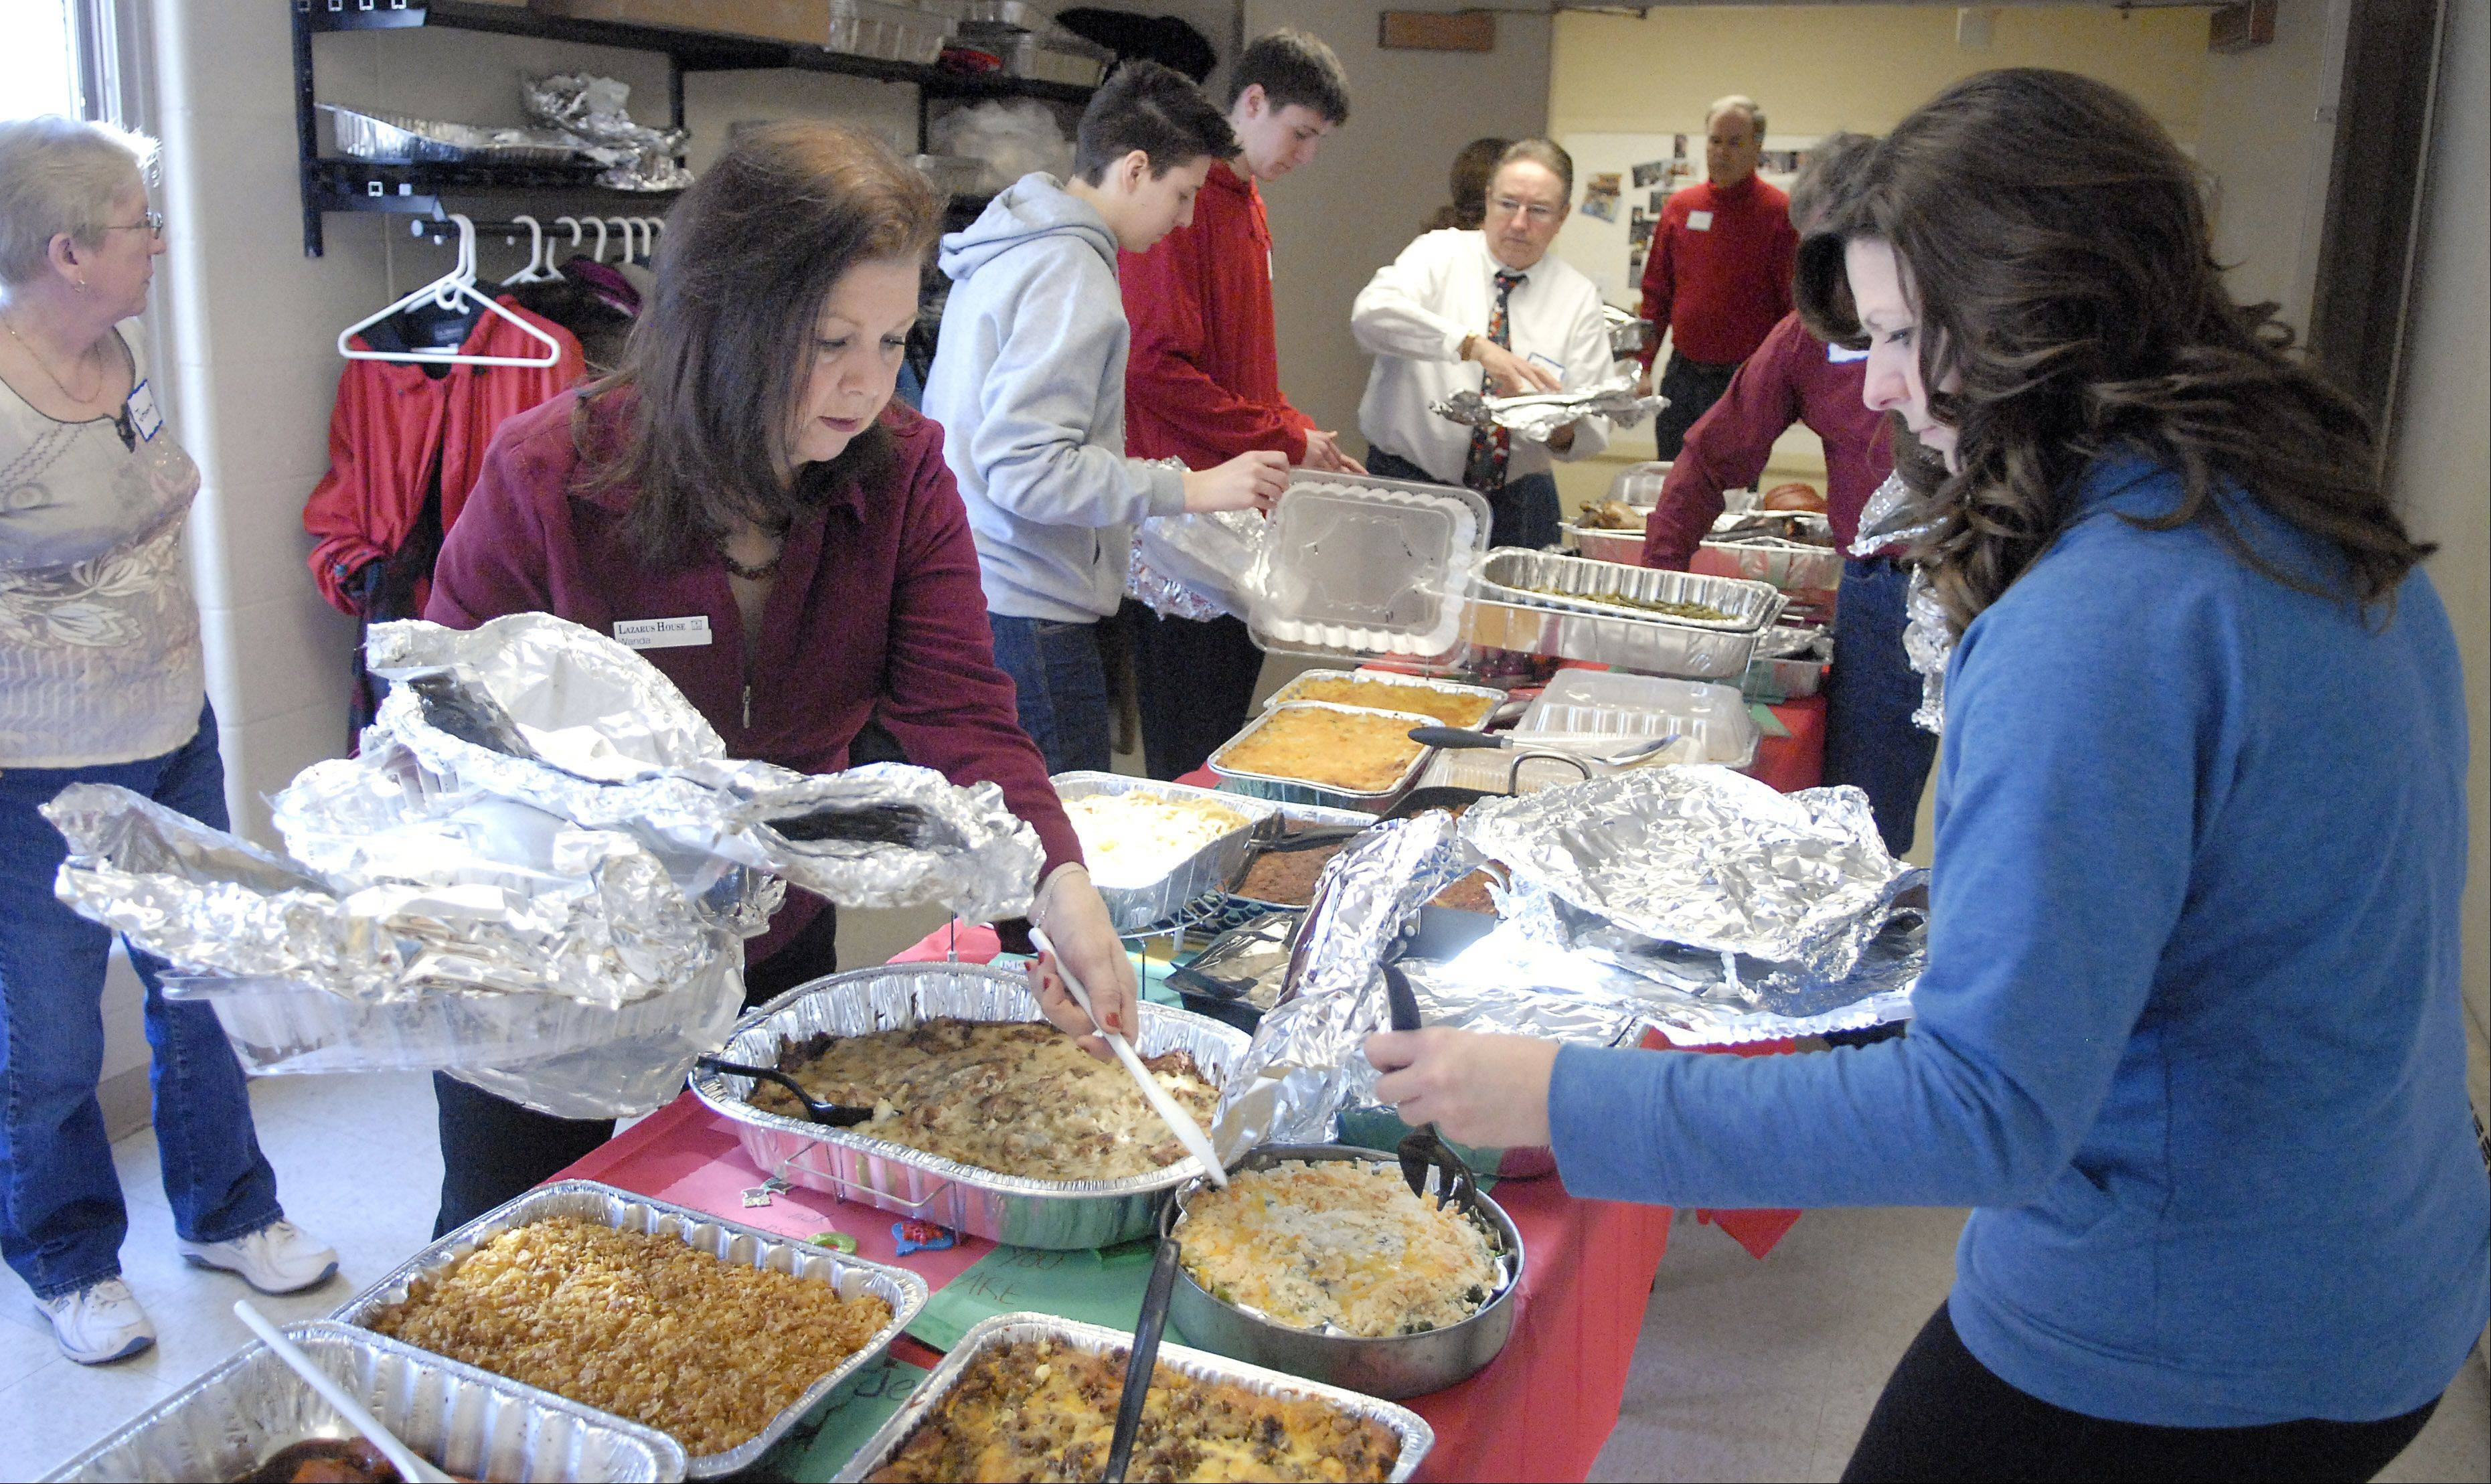 Lazarus House is asking for donations of entrees, side dishes and appetizers for its annual Christmas Brunch on Dec. 25. Financial donations or gift cards also are welcome.